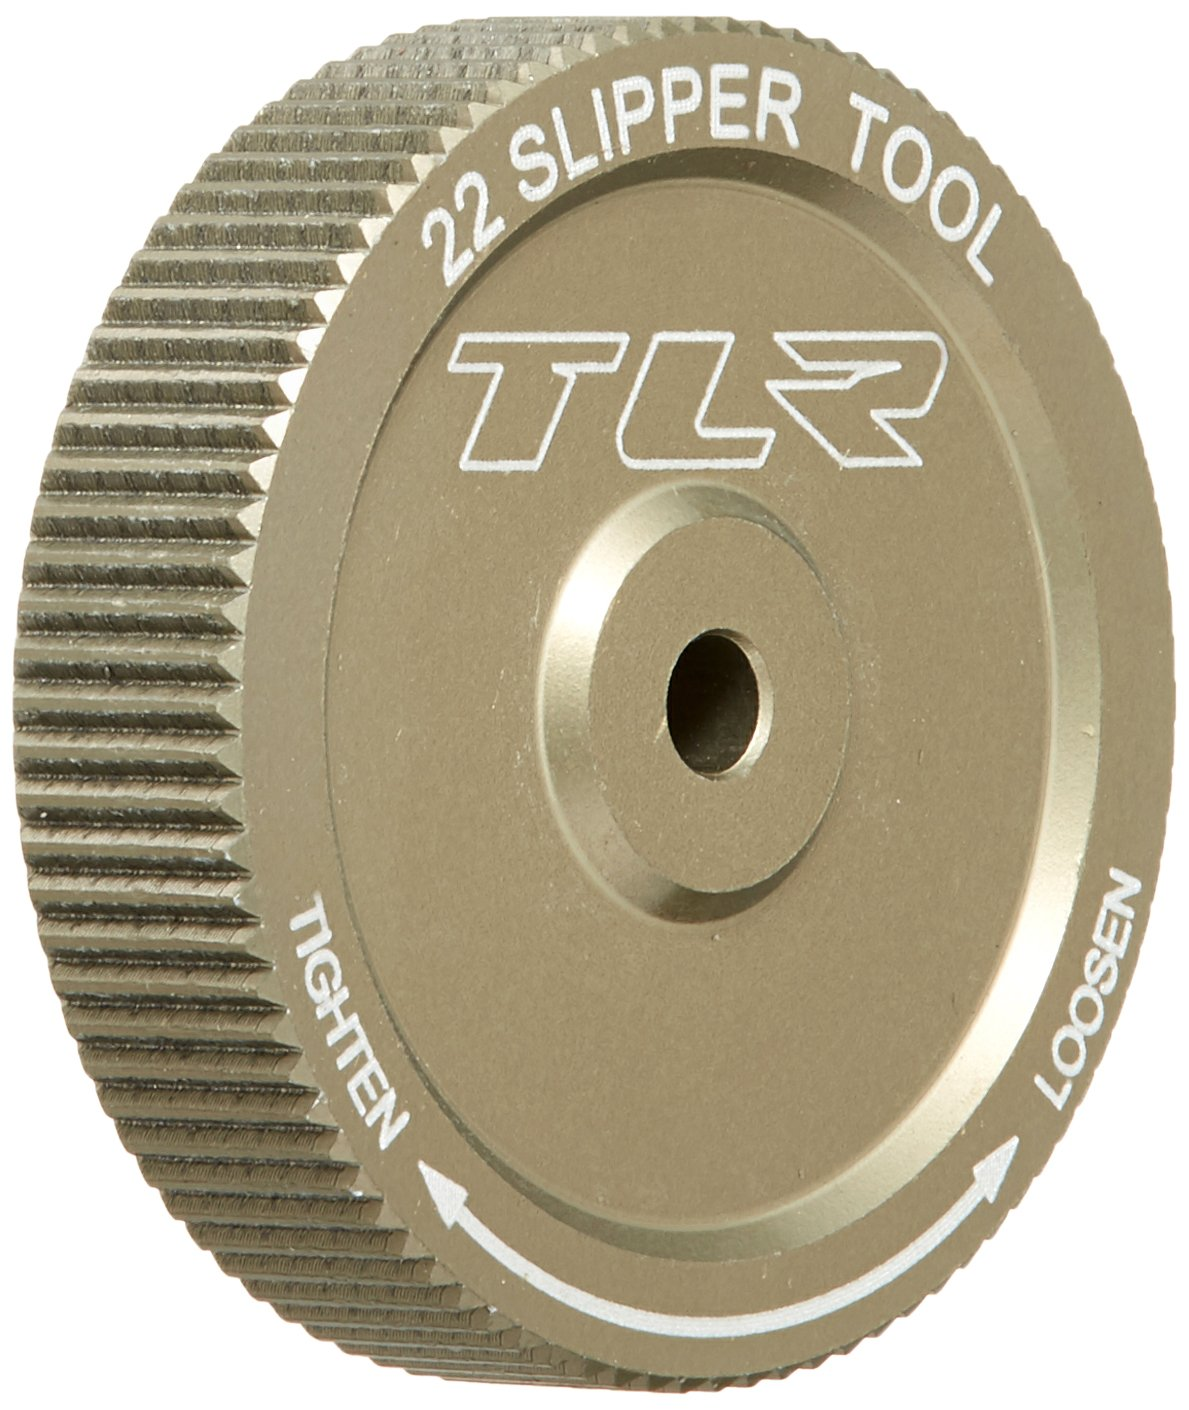 22/22T Slipper Adjustment Tool by Team Losi